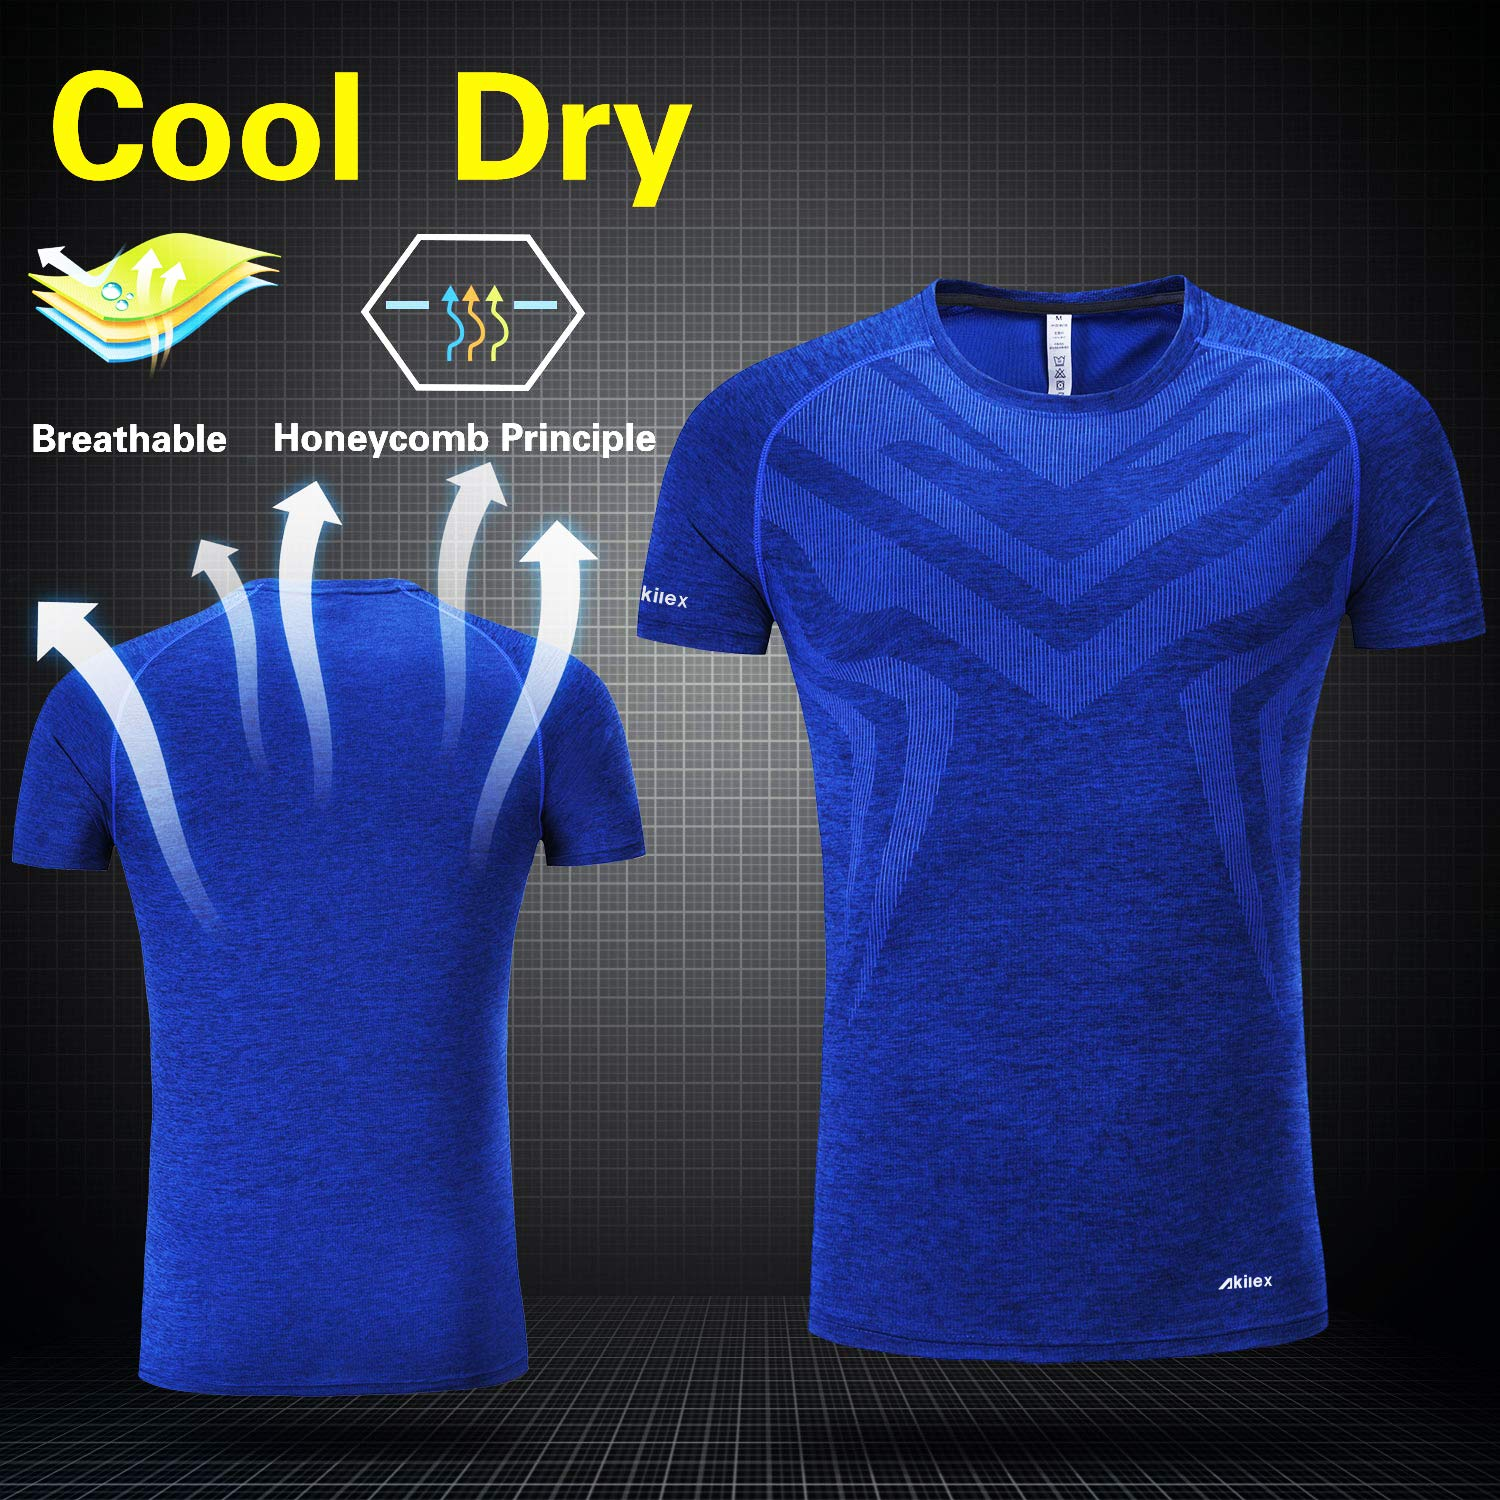 c3327cd90 Amazon.com: Akilex Men's Tight Sports Short Sleeve Comfortable Quick Dry  Fitness Running Shirt Top (3006 Blue, XXL): Clothing